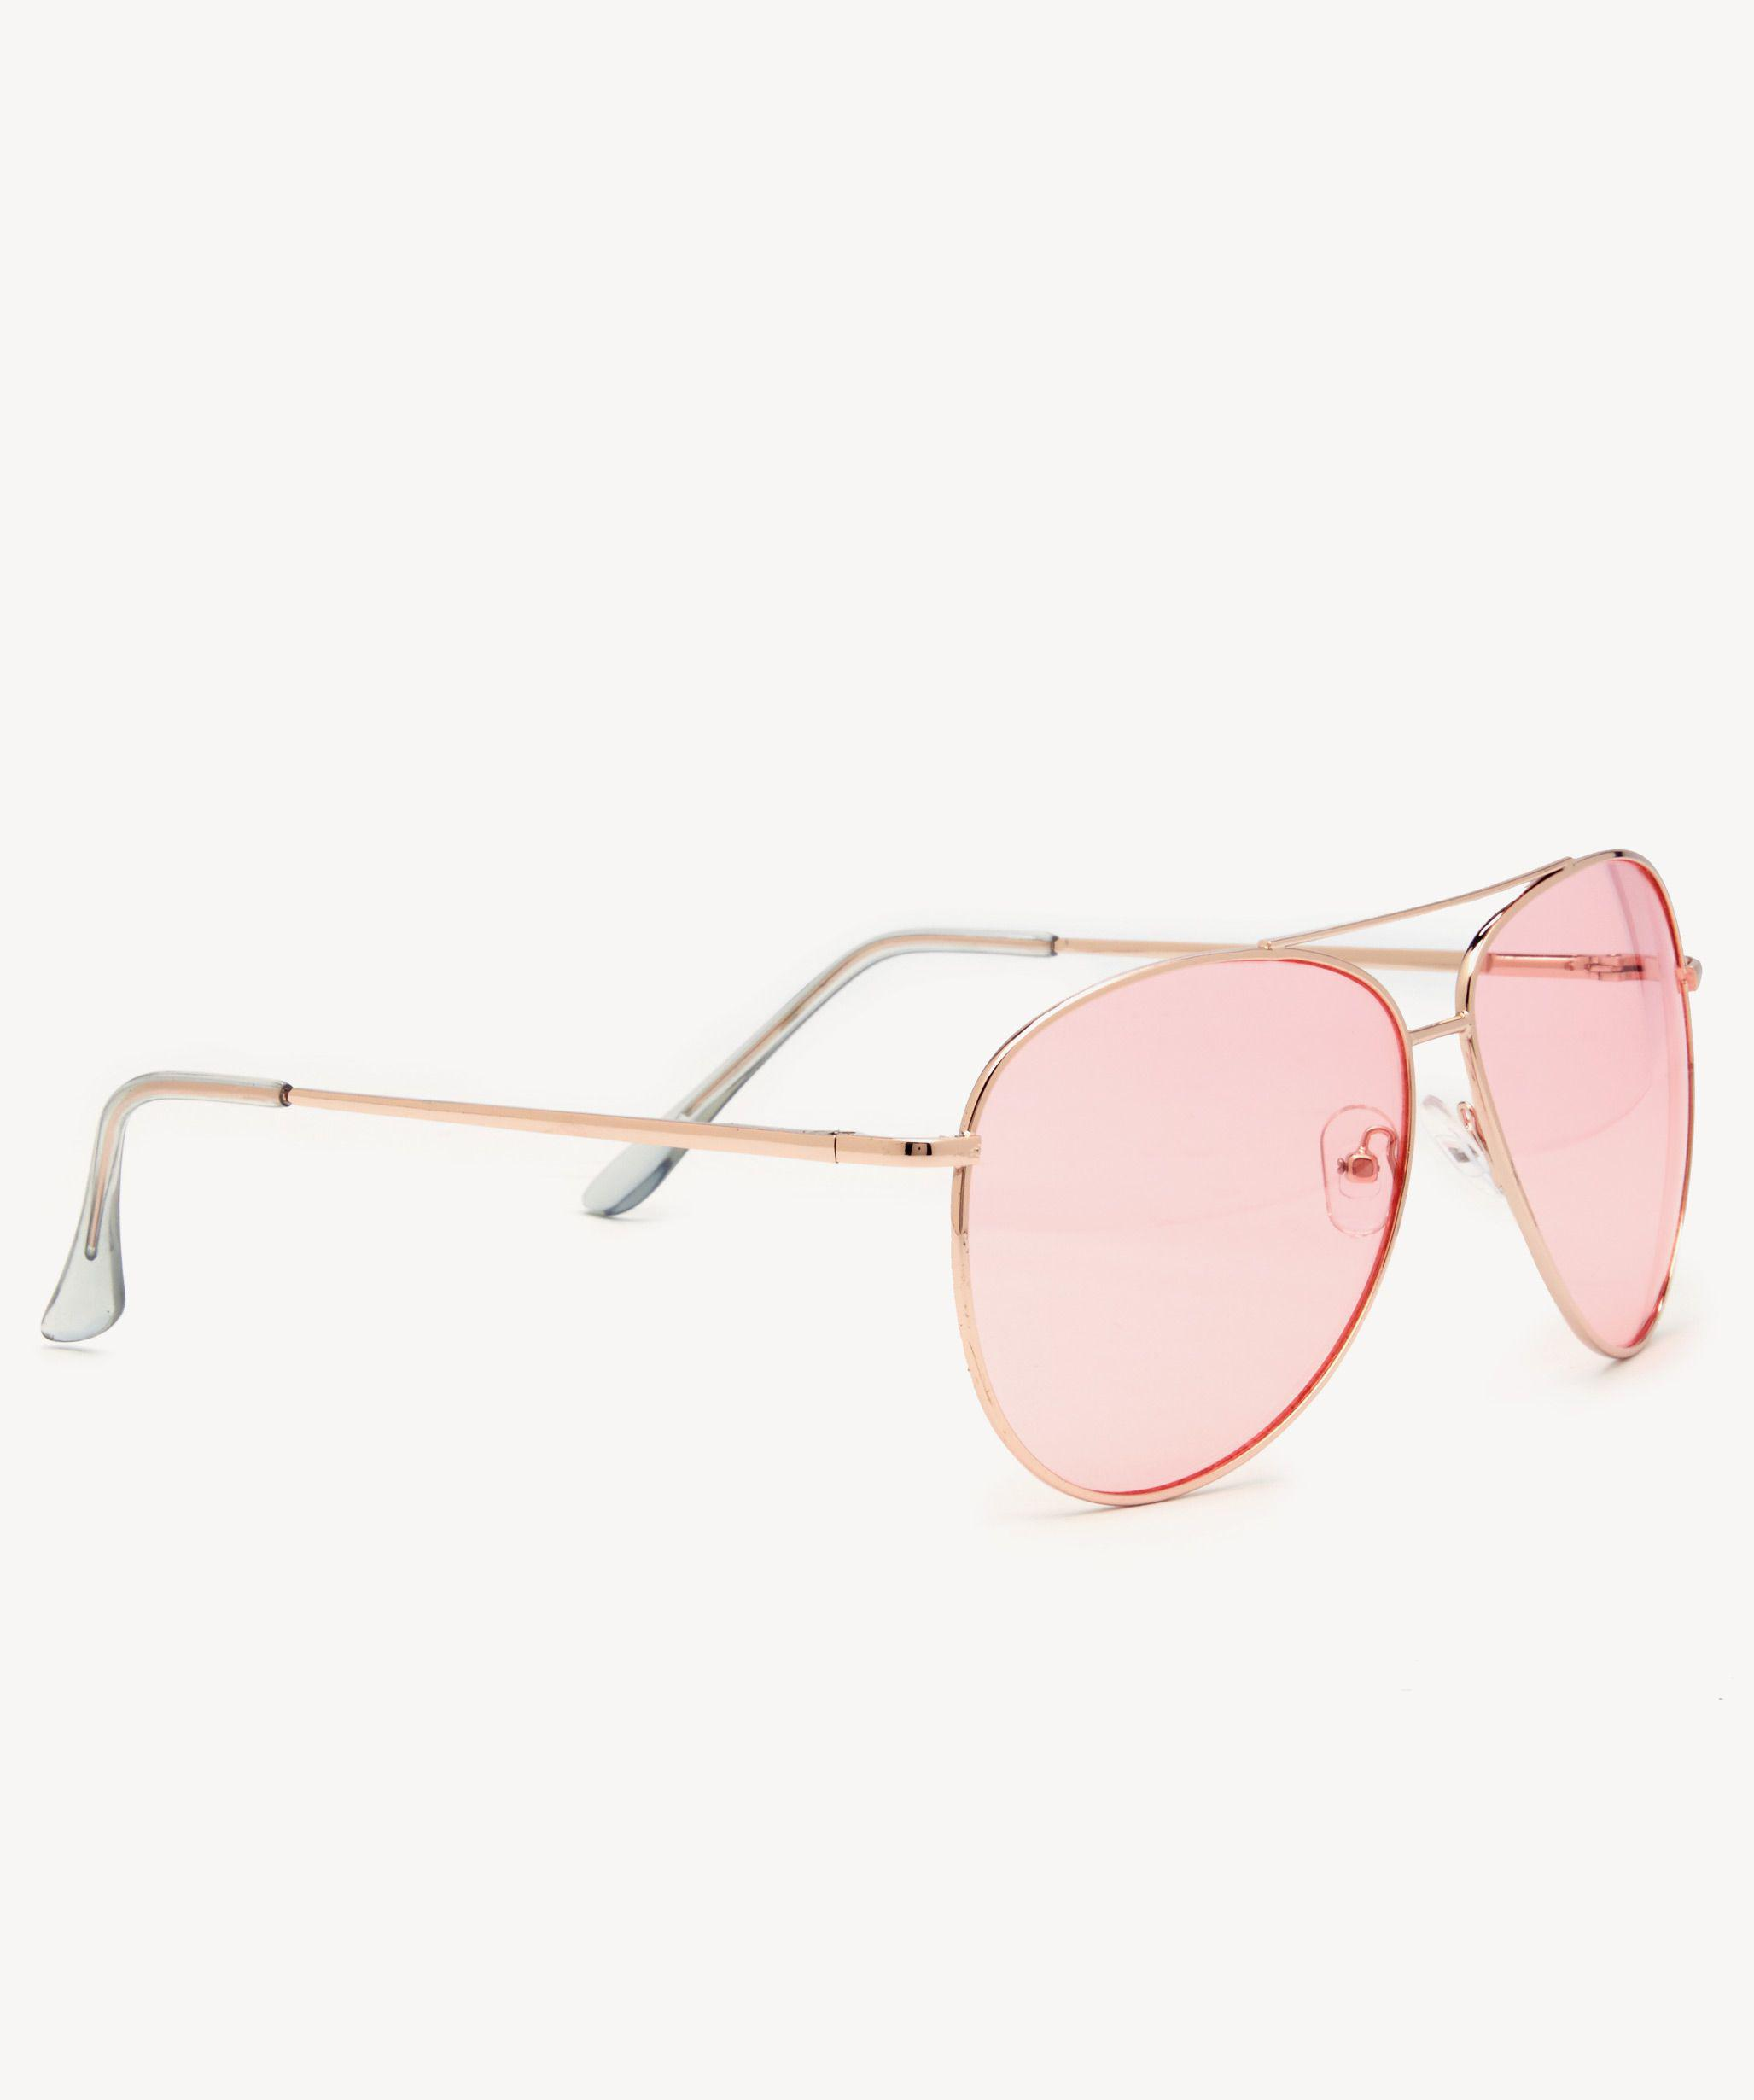 4e50755f9a6 Lyst - Sole Society Patrina Clear Frame Aviator Sunglasses in Pink